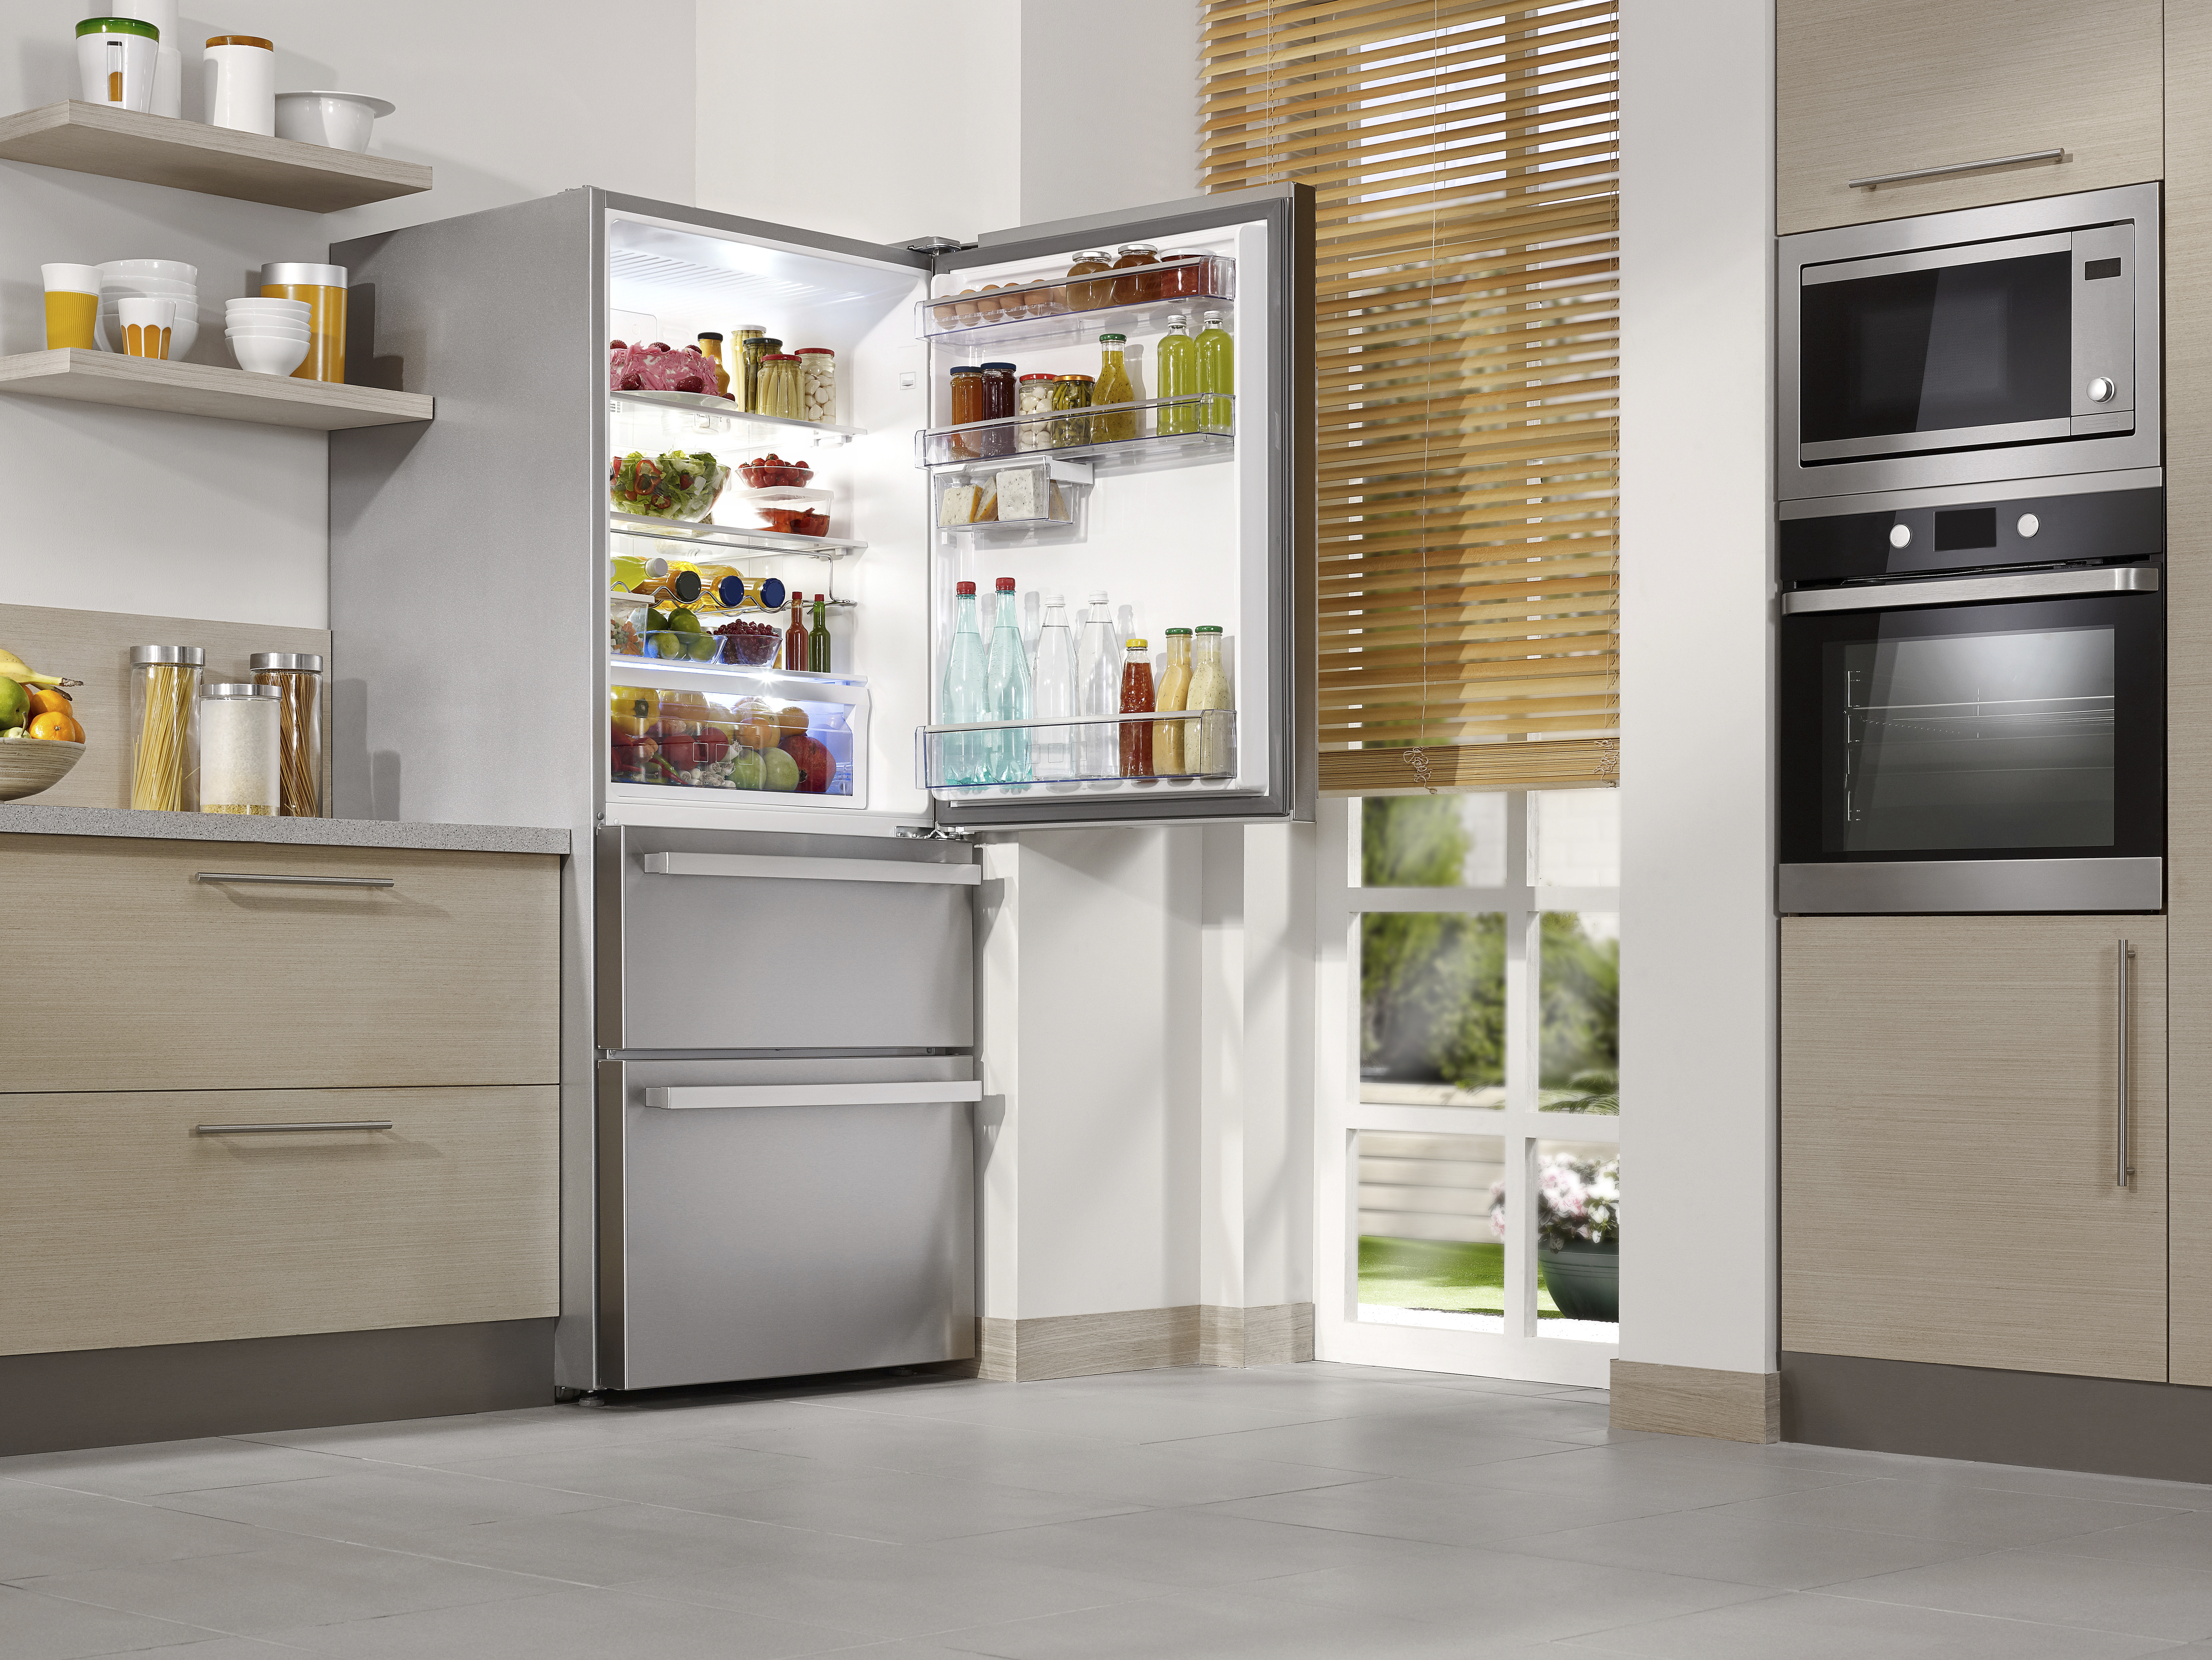 What Causes a Refrigerator to Rattle? | Home Guides | SF Gate